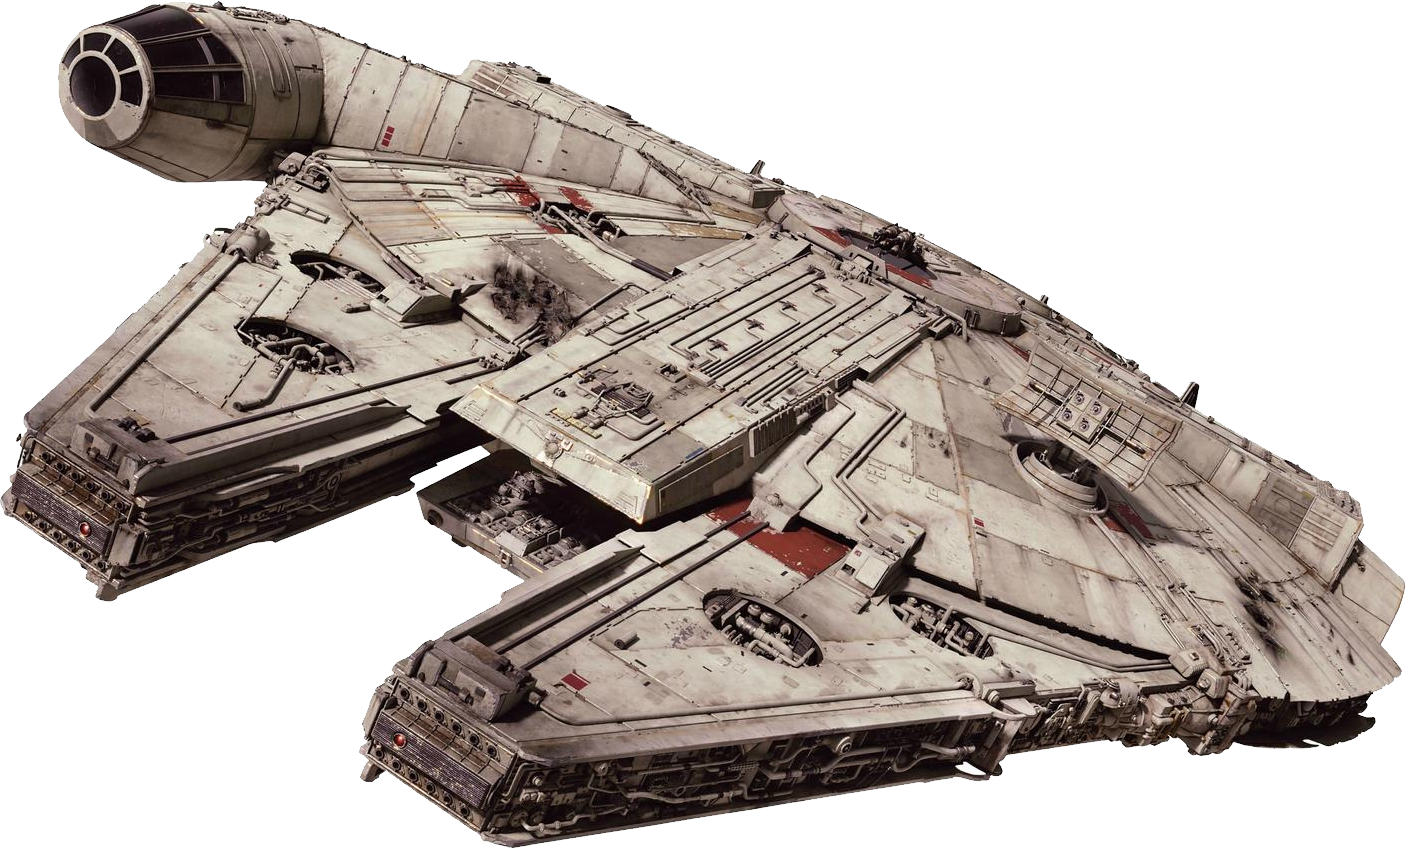 Star Wars Png Star Wars Spaceships Millennium Falcon Star Wars Characters Clipart